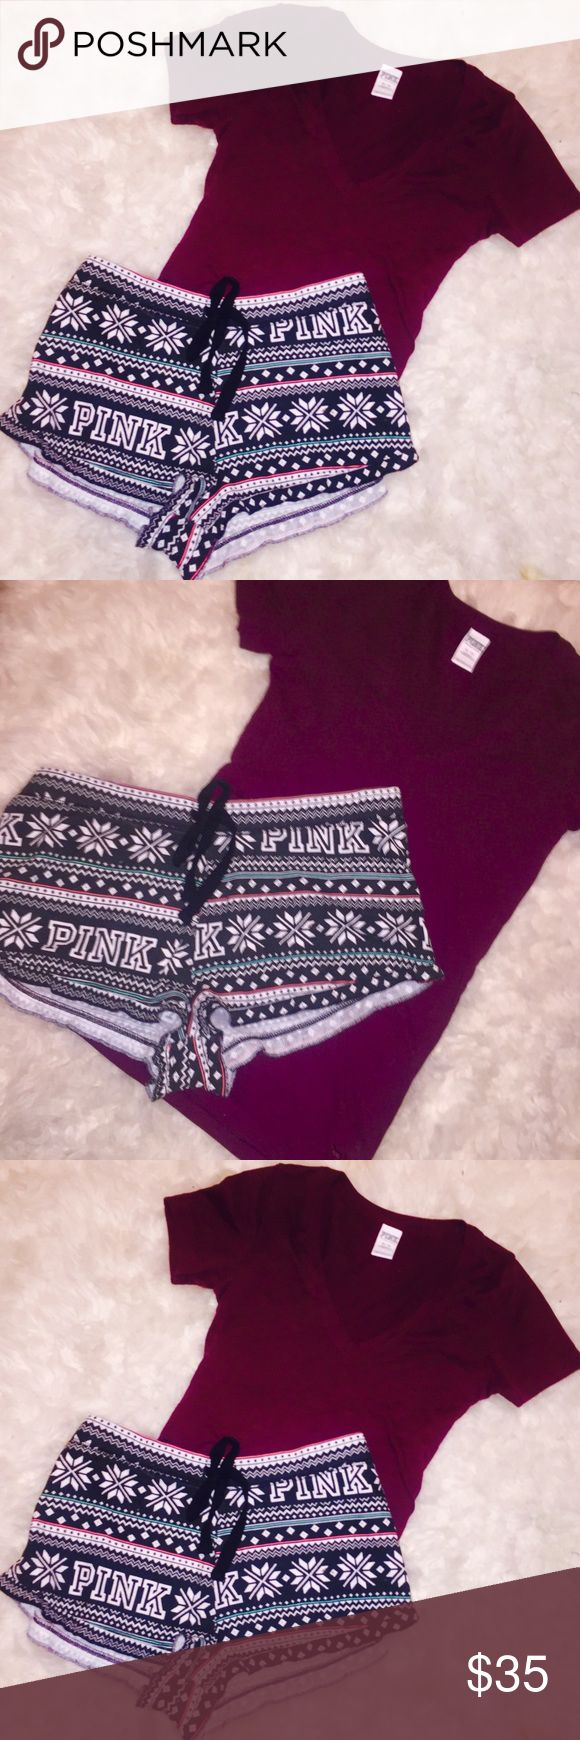 Burgundy VS Pink Shorts & Shirt Victoria secret pink shorts & shirt bundle  NWOT  Soooo Cute - ex small & medium This purchase includes 1 Burgundy maroon V-neck short sleeve cotton T-shirt size extra small longer fit 1 pink winter print shorts, with snowflakes, short shorts, size medium.  Both items are new without the tags perfect condition. They come from a pet free smoke free home PINK Victoria's Secret Shorts